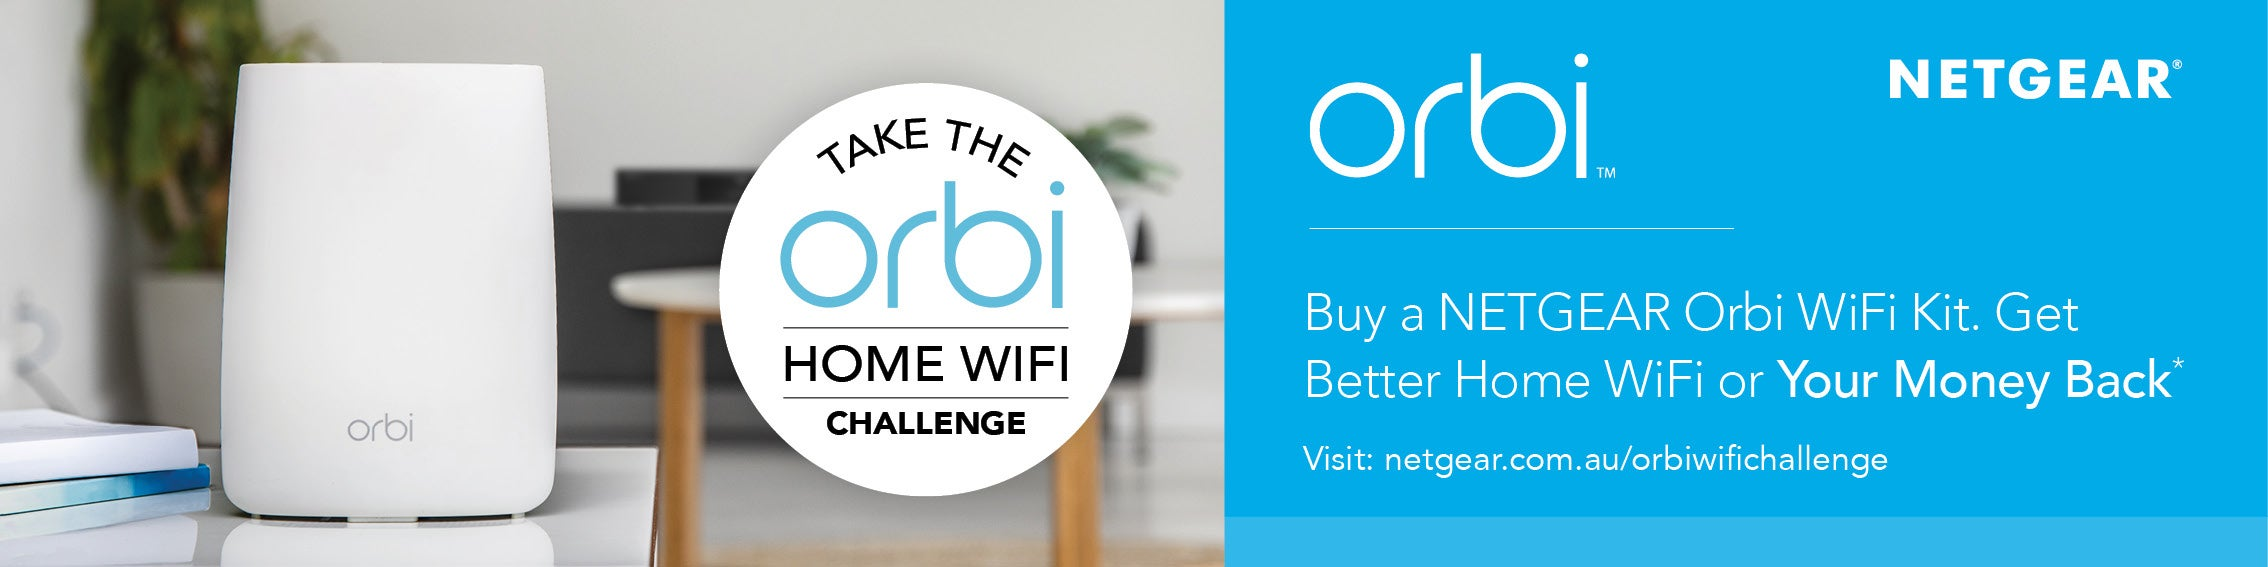 Take the Orbi Better Home WiFi Challenge